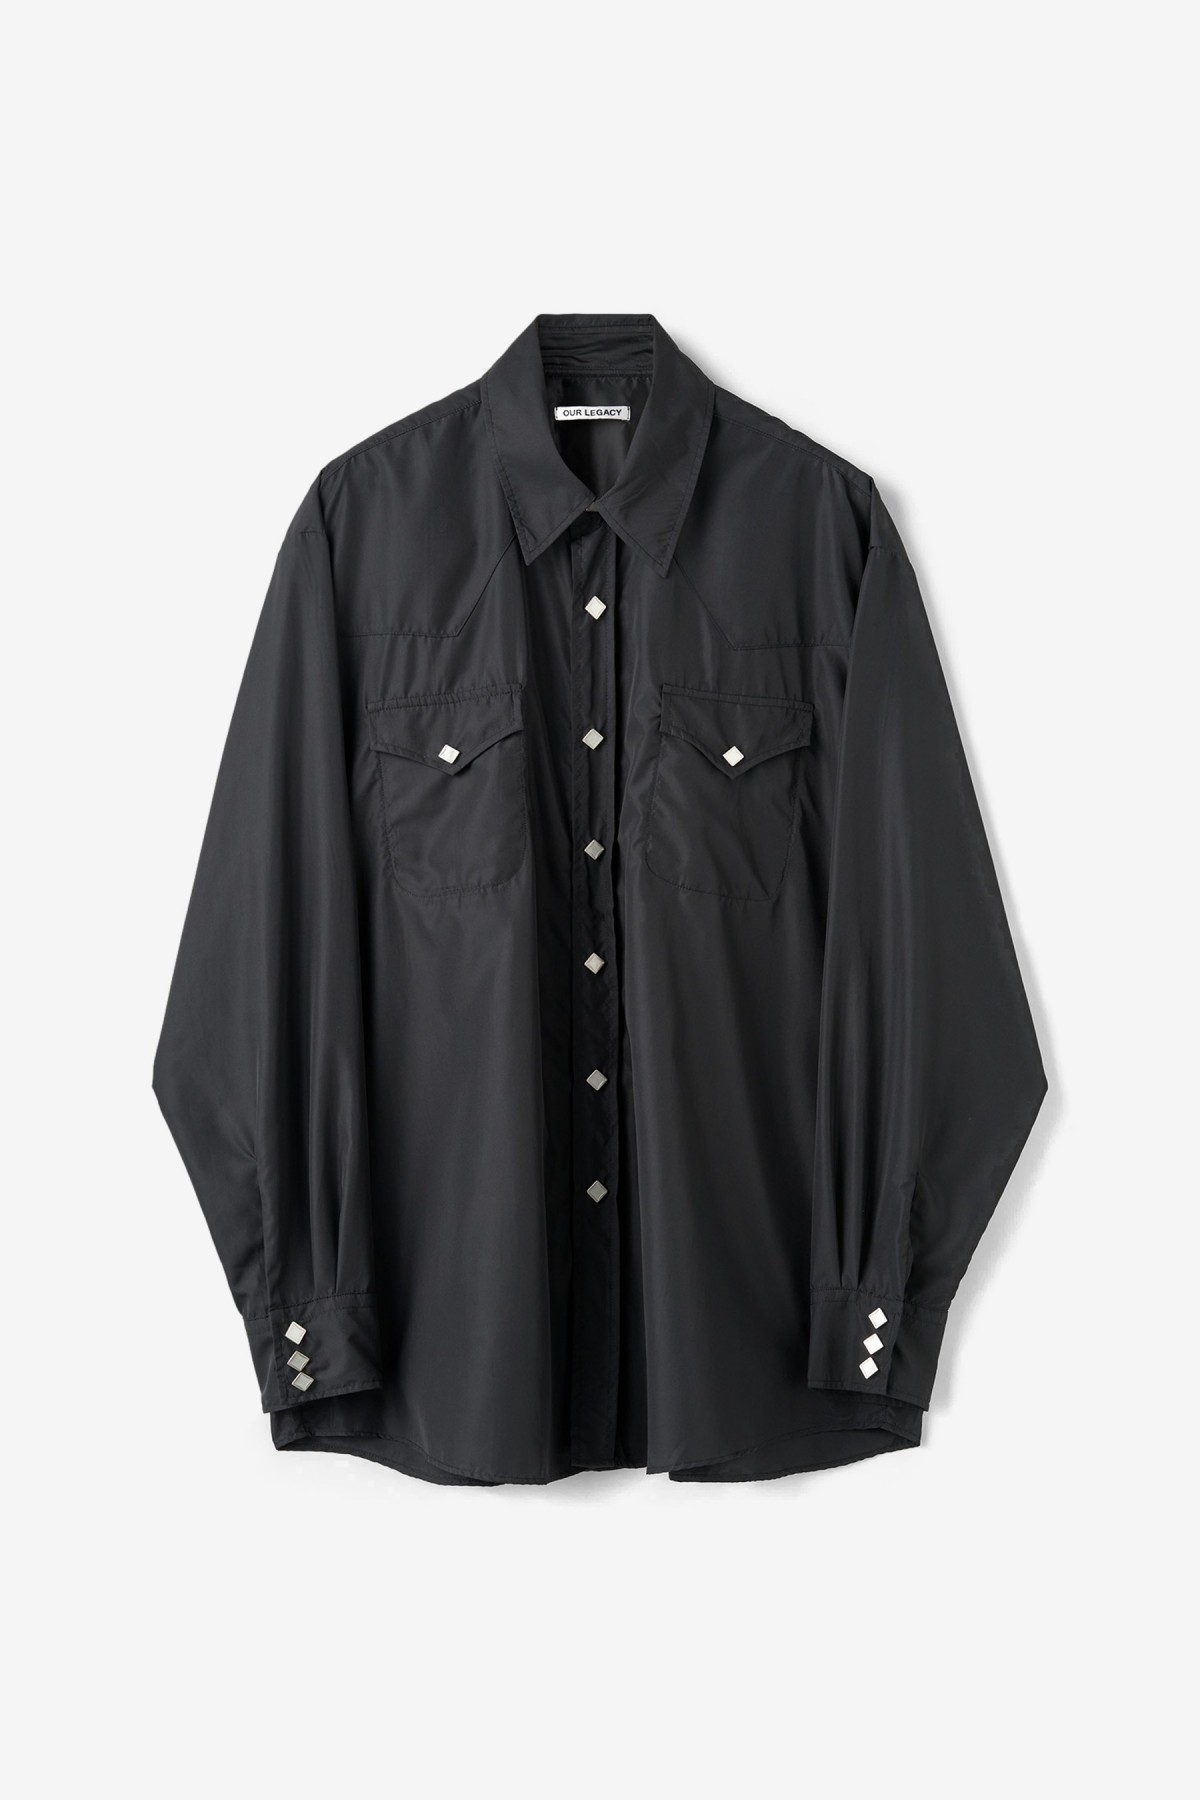 Our Legacy Ranch Shirt in Black Dull Luster